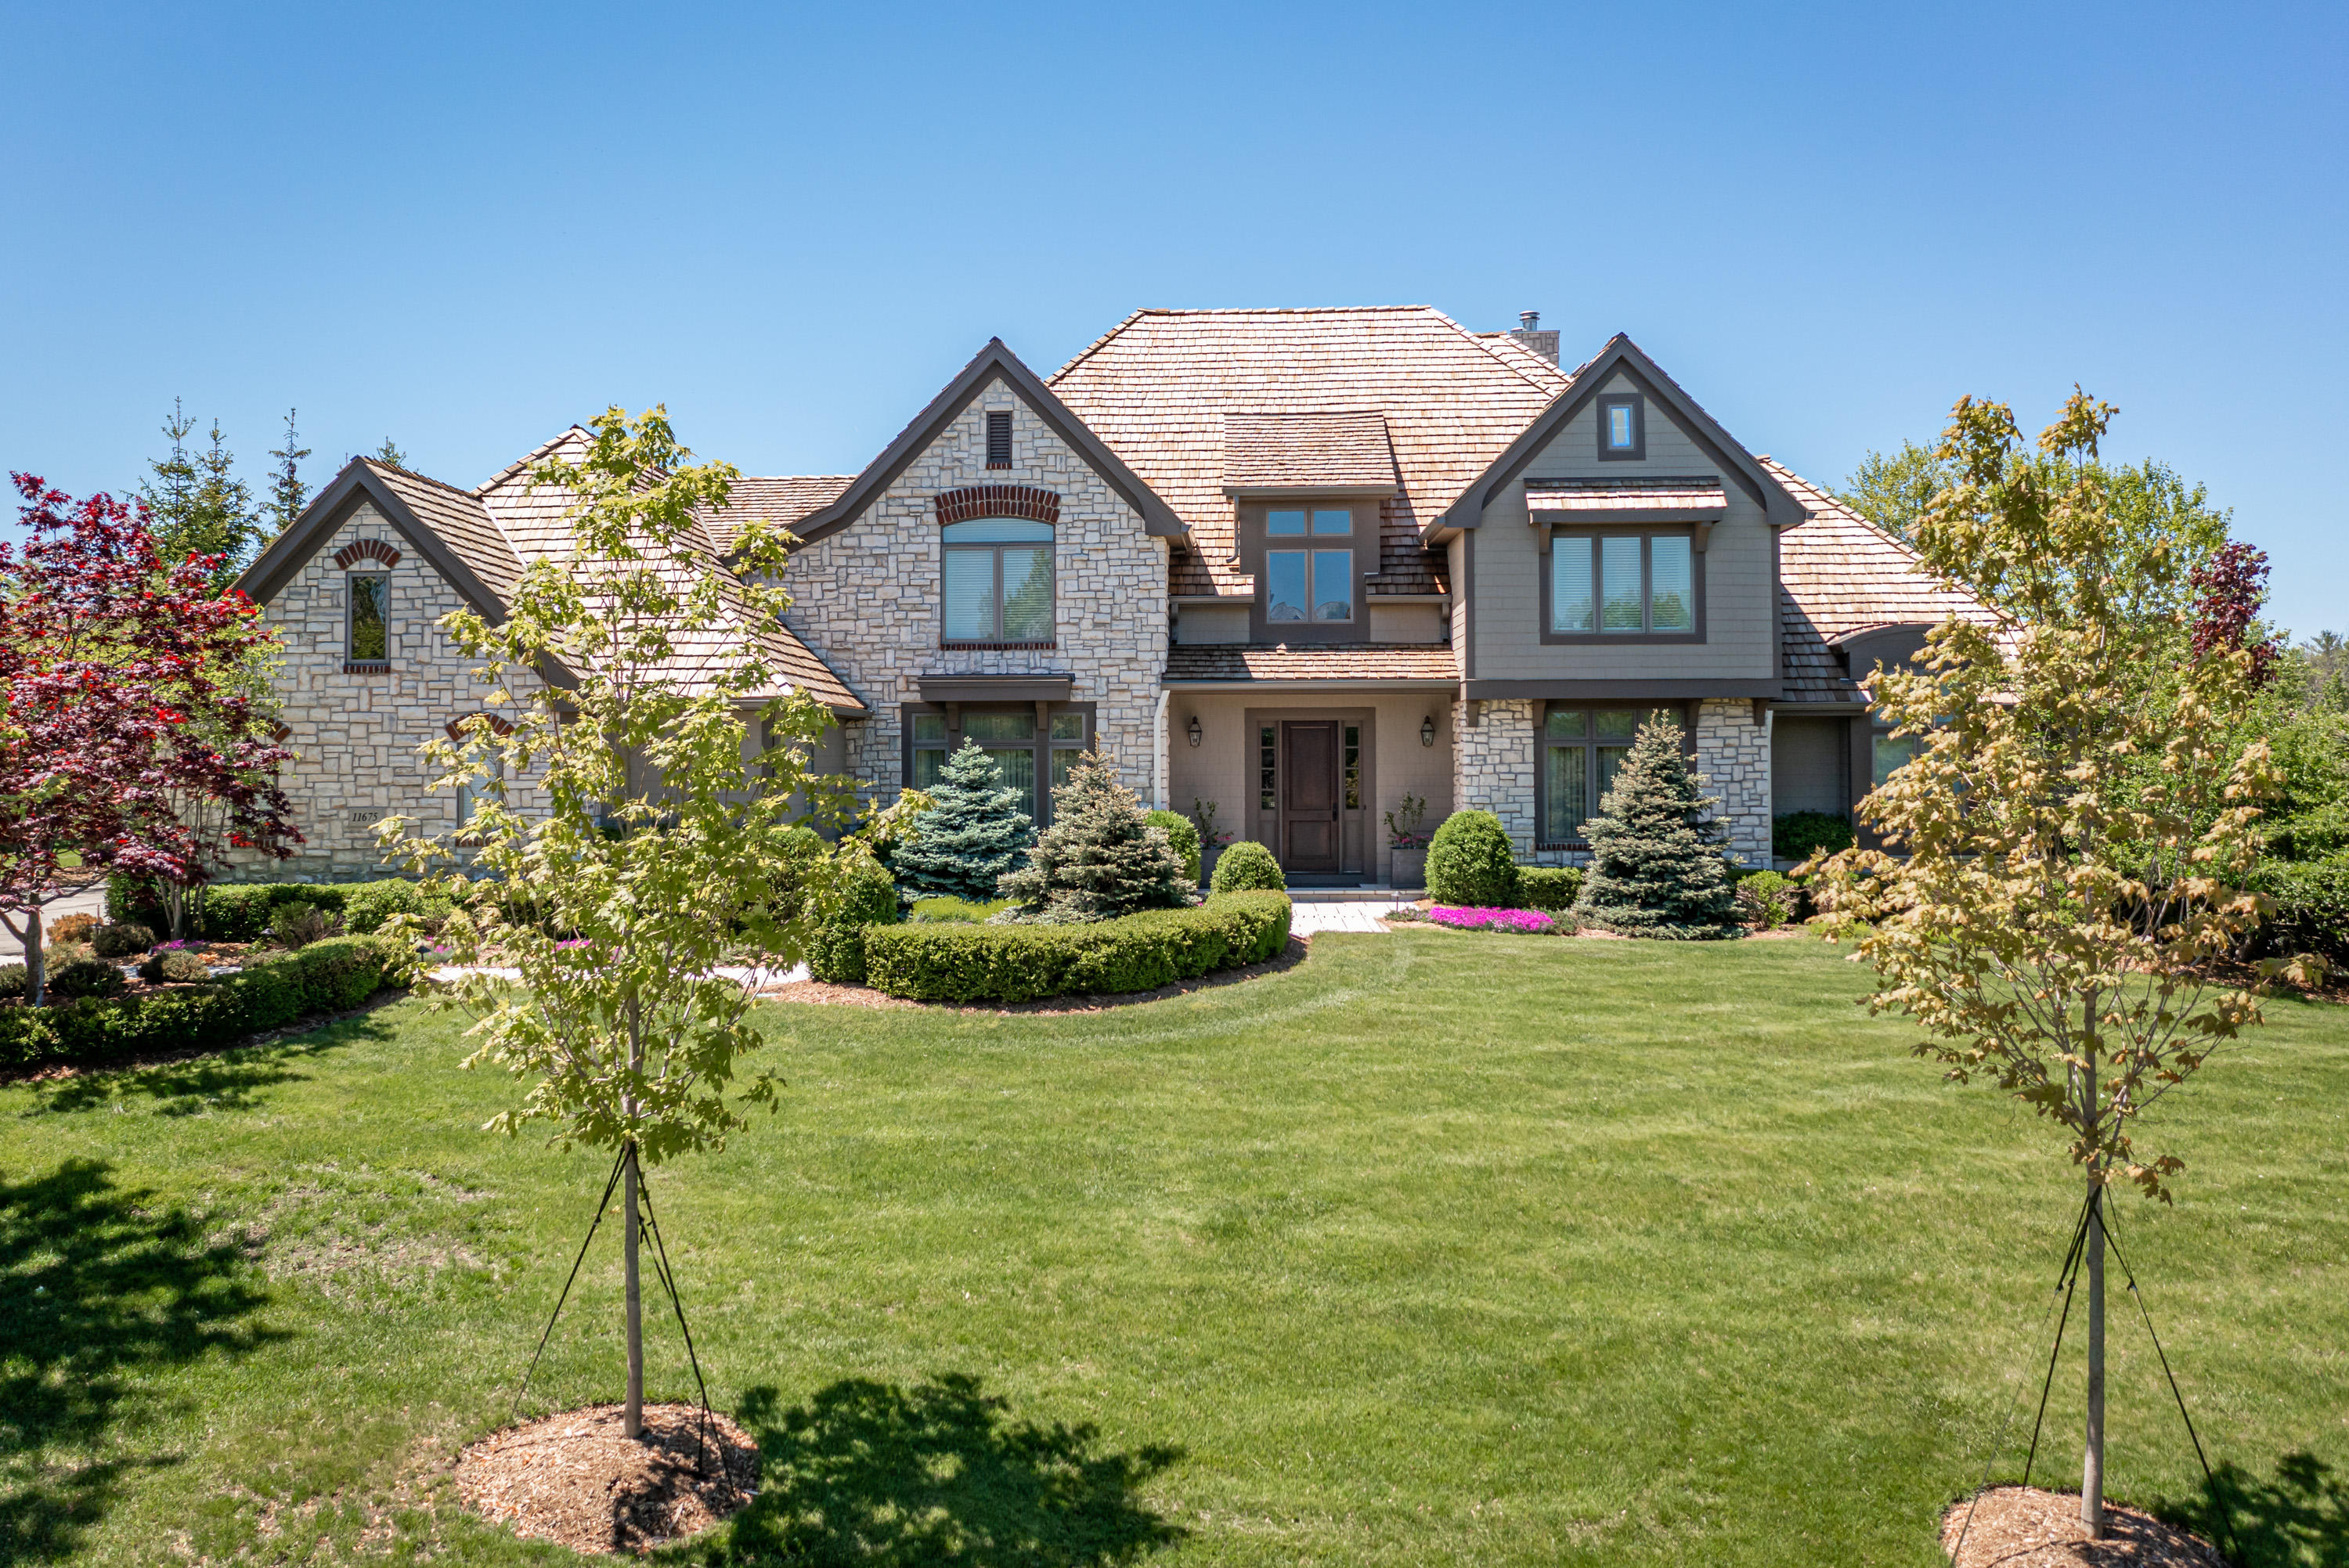 11675 N Canterbury Dr, Mequon, WI 53092